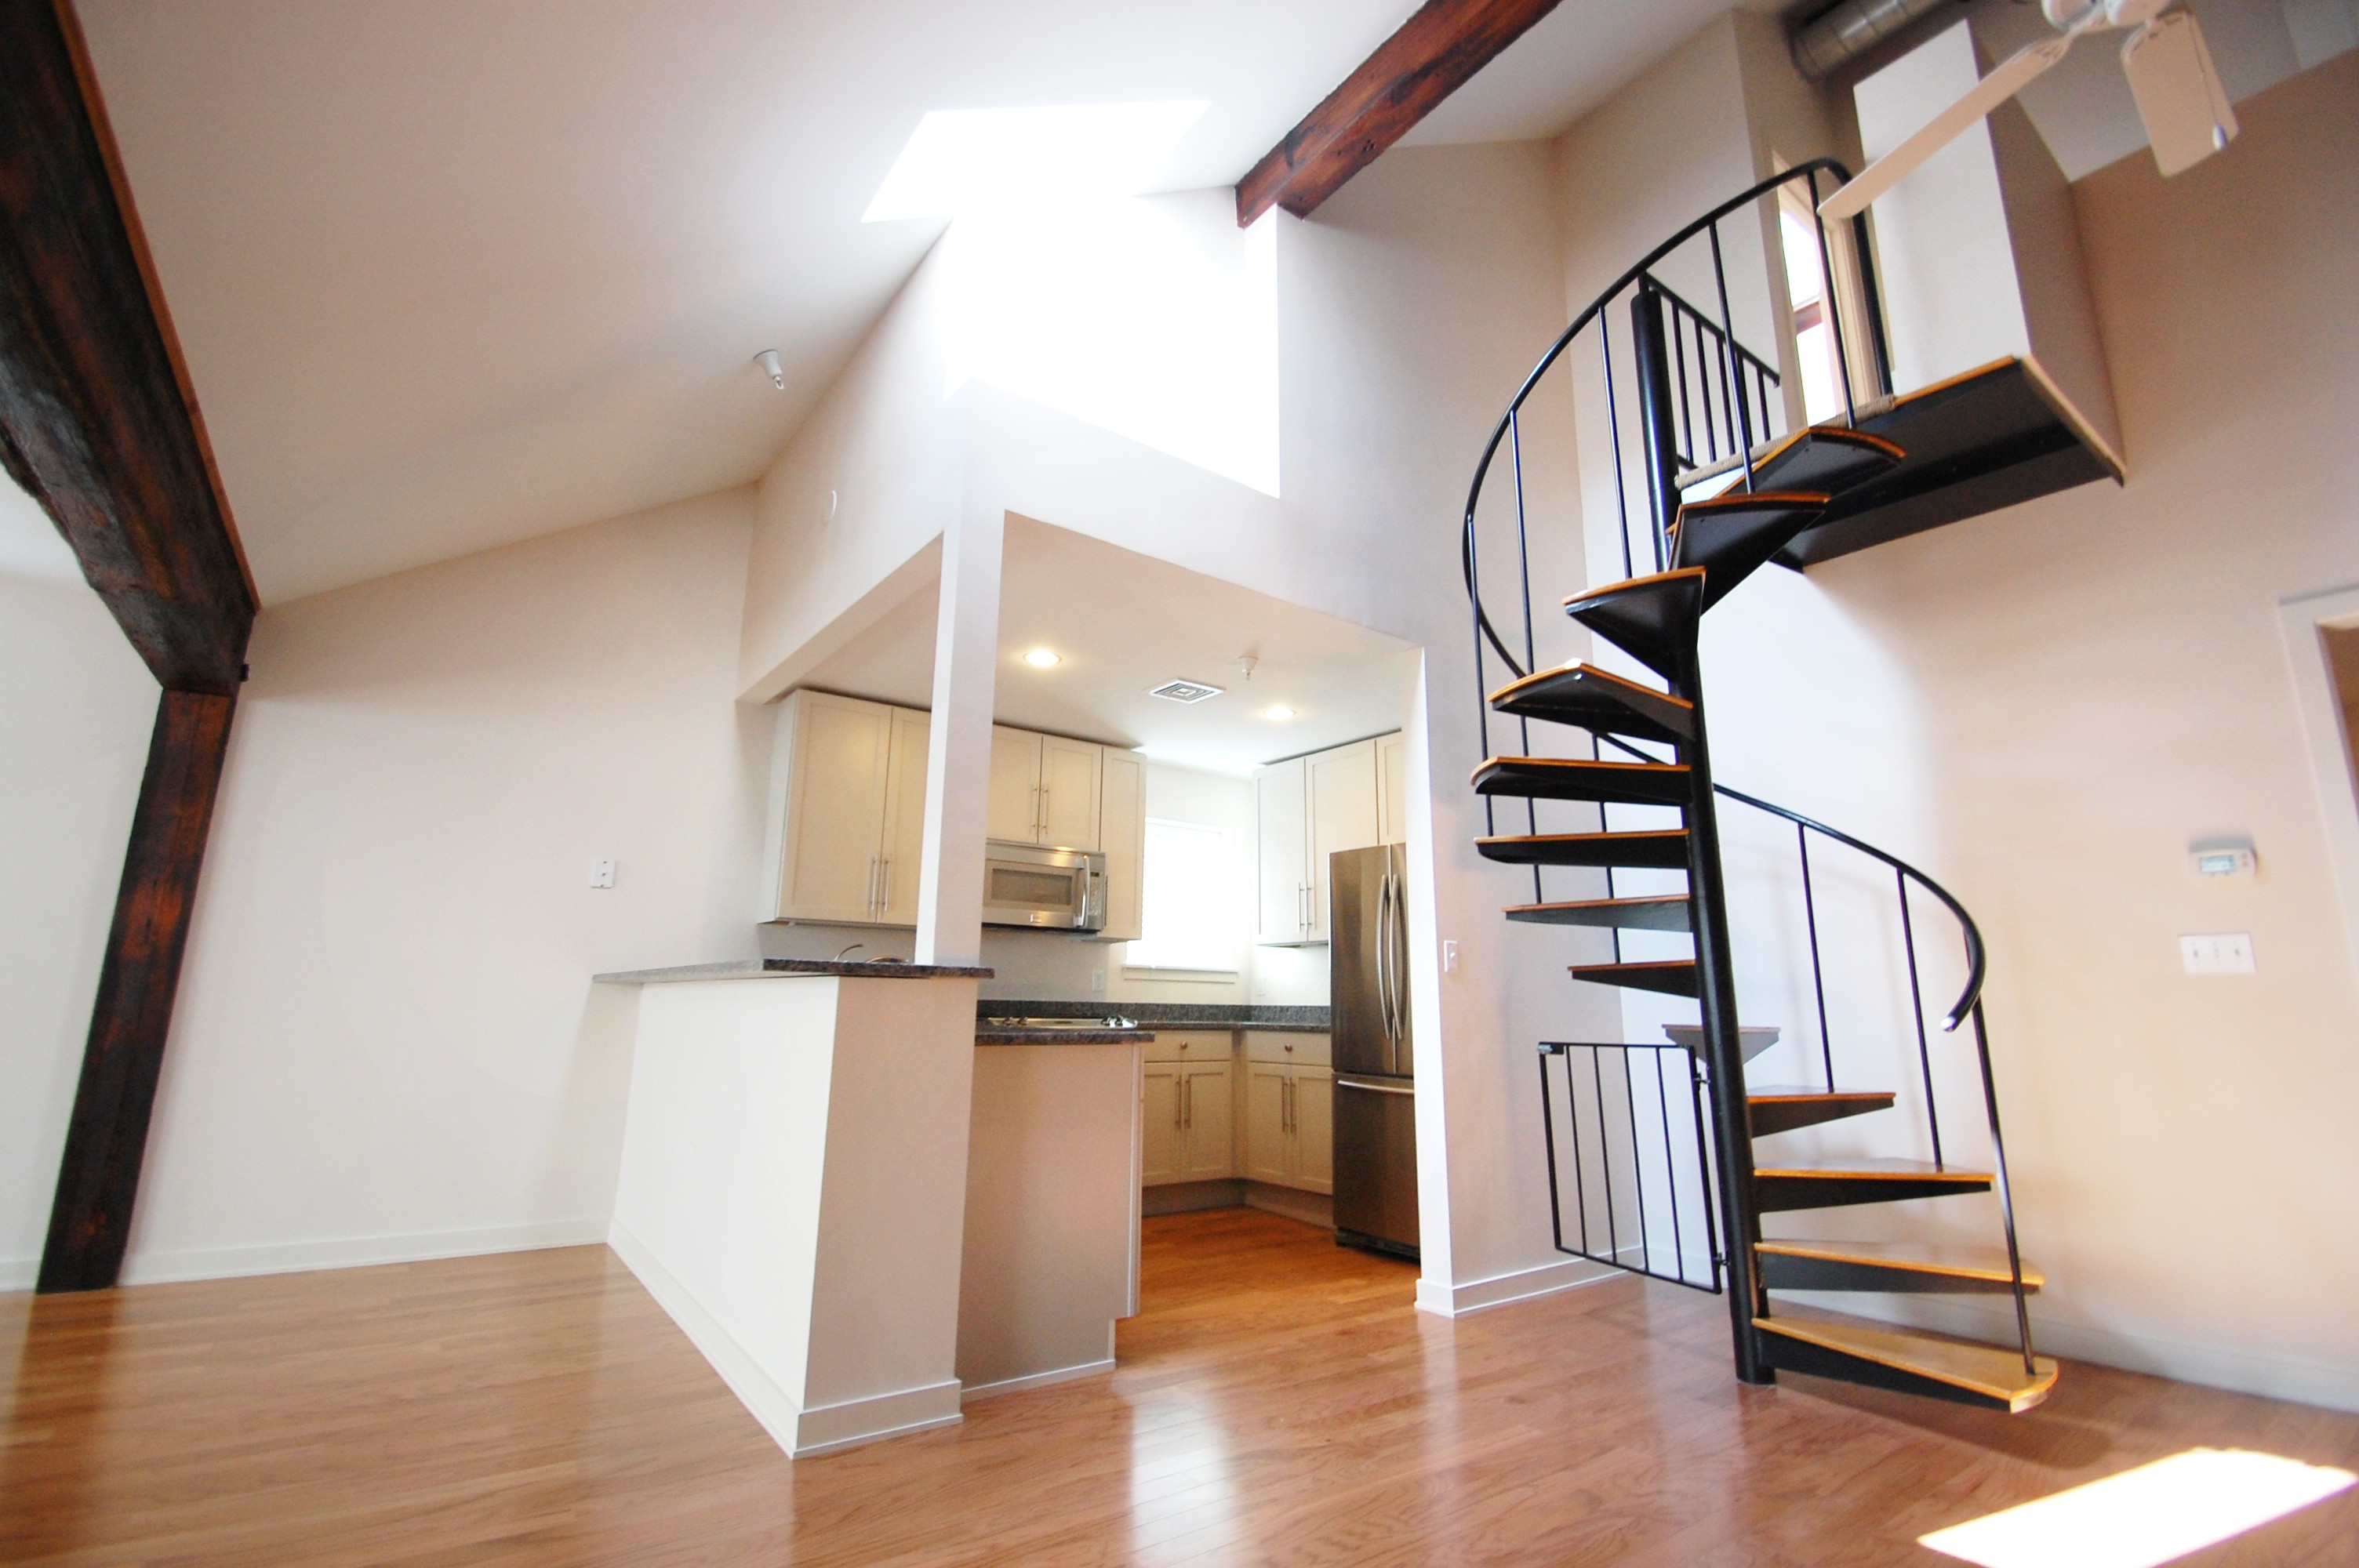 STAIRCASES AND SPACES: SAVING SPACE AND INCREASING FUNCTIONALITY